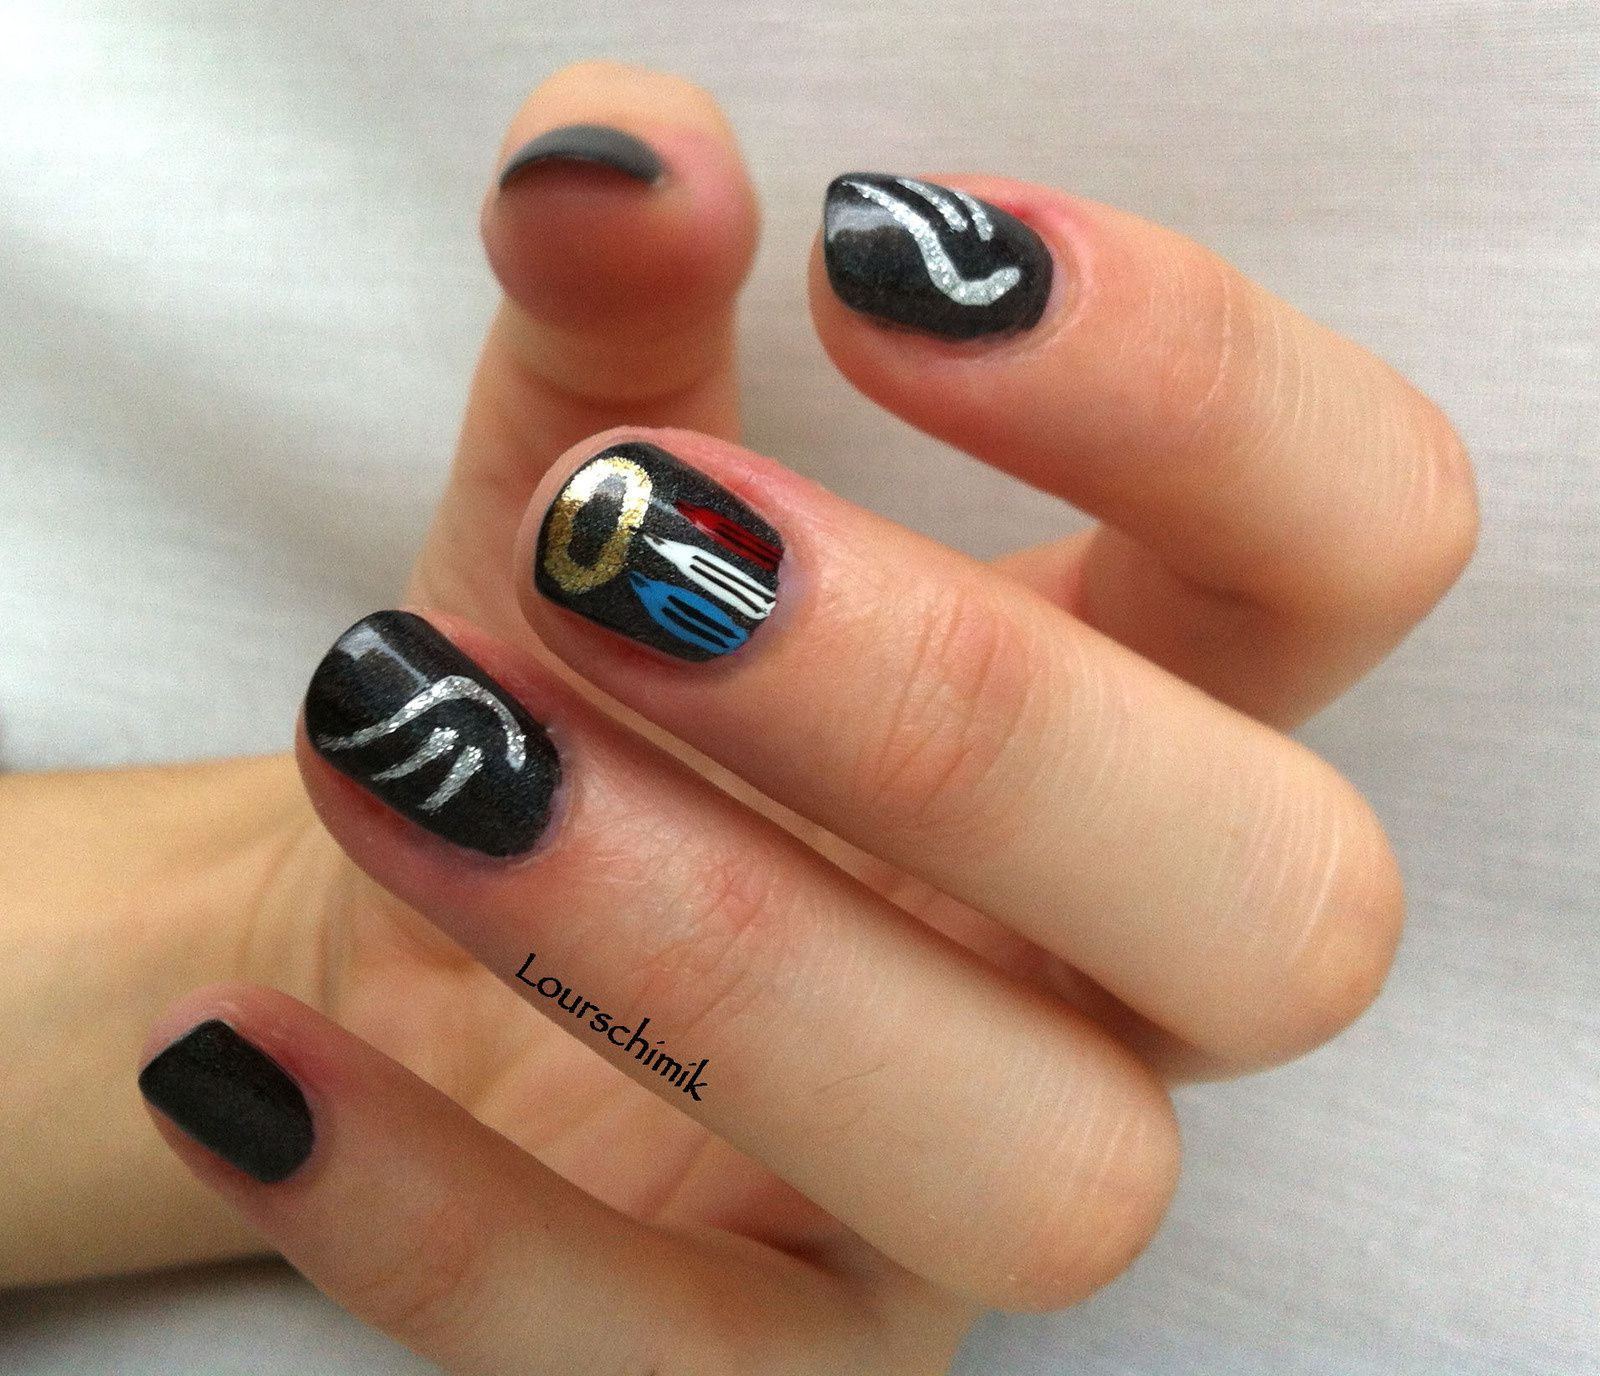 je suis charlie -nailstorming-